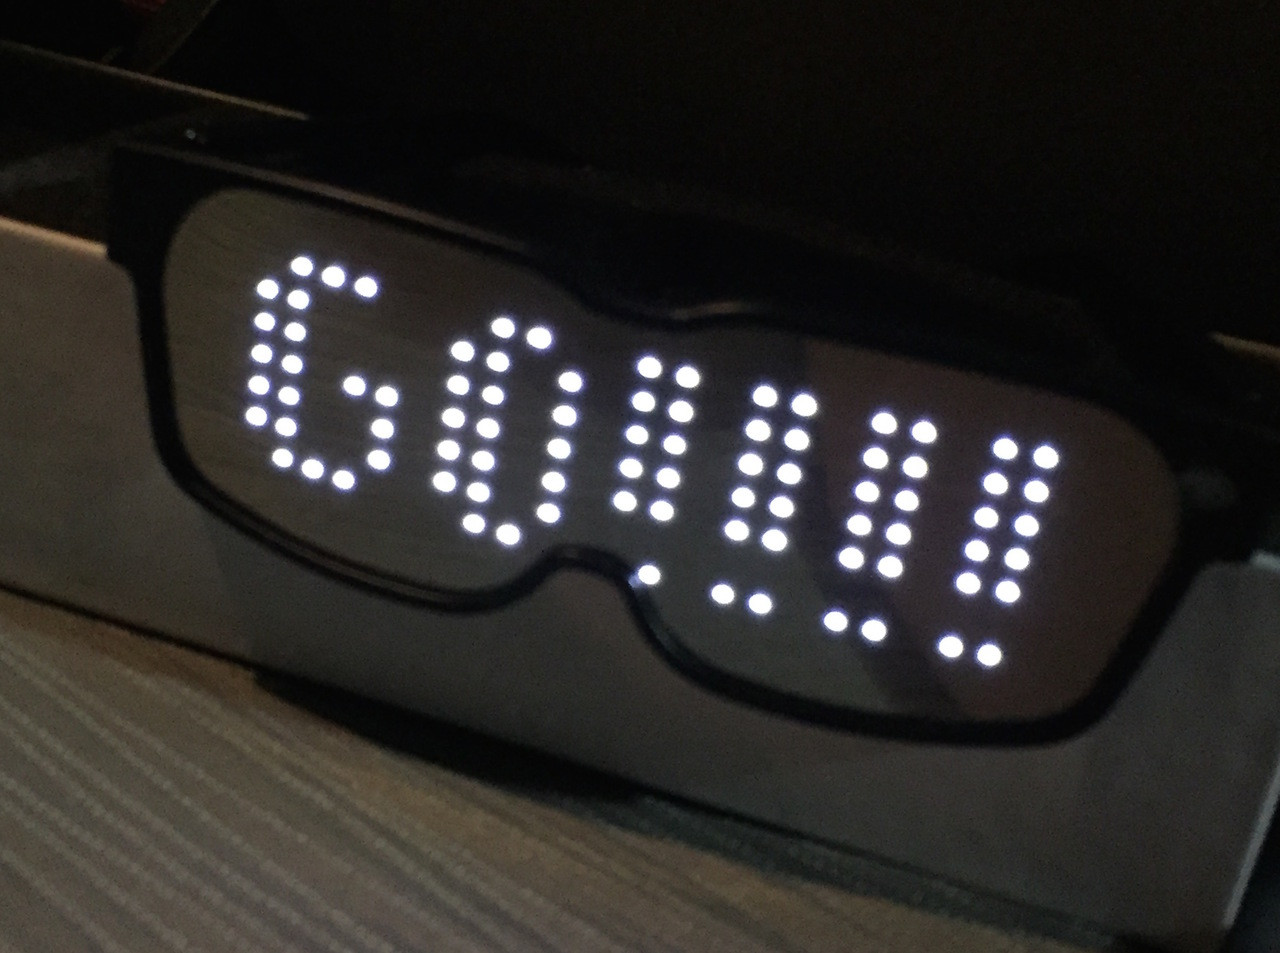 Smart LED Video Billboard Glasses with an App Control Interface that lets you design your own text, Moving Text, Animations, Designs, Built in Sample Banks, On Board and App Memory Banks, Sound Reactive,Rechargeable, Bluetooth control! Super Awesome for Shows and DJ's, Sports Events, and plain old fun! http://www.nightclubshop.com/chemis-bluetooth-led-glasses-smart-led-lcd-video-billboard-shades/